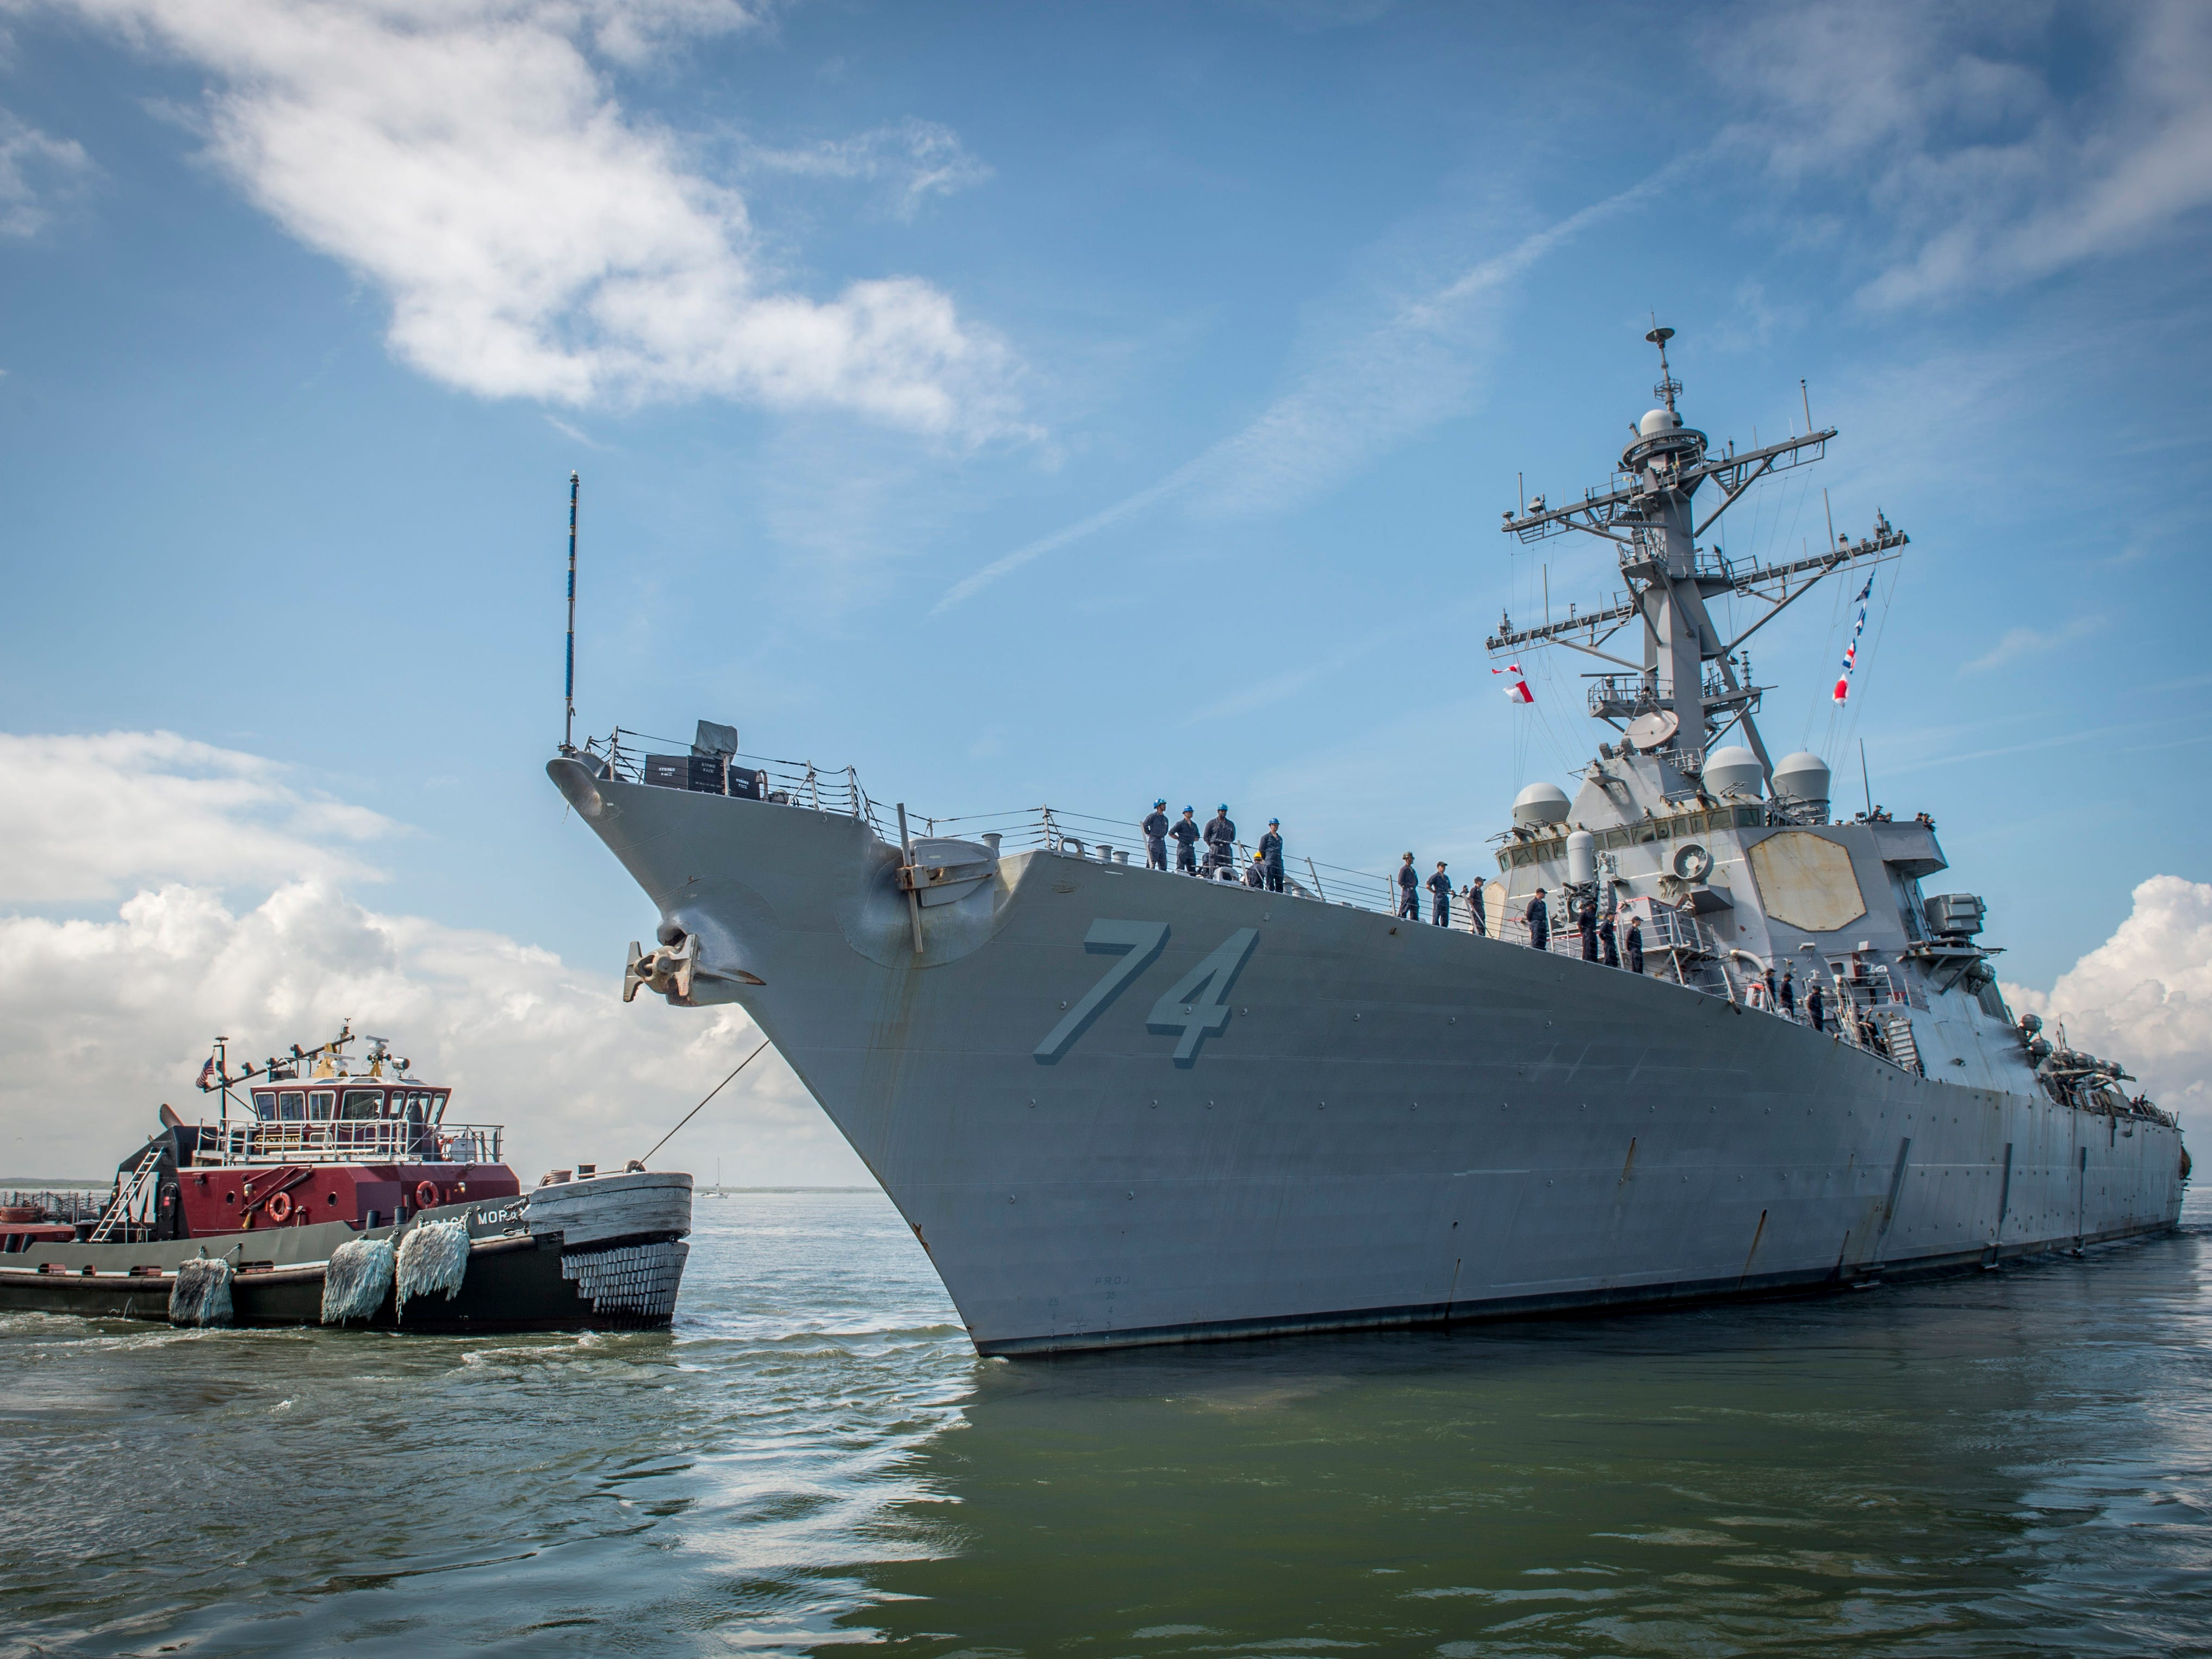 A handout photo made available by the Navy Office of Information shows The guided-missile destroyer USS McFaul (DDG 74) departing in Norfolk, Va., Sept. 10, 2018. There are nearly 30 ships preparing to get underway from Naval Station Norfolk and Joint Expeditionary Base Little Creek as Hurricane Florence is forecasted to bring high winds and rain to the Mid-Atlantic coast. Ships will be directed to areas of the Atlantic where they can best avoid the storm.